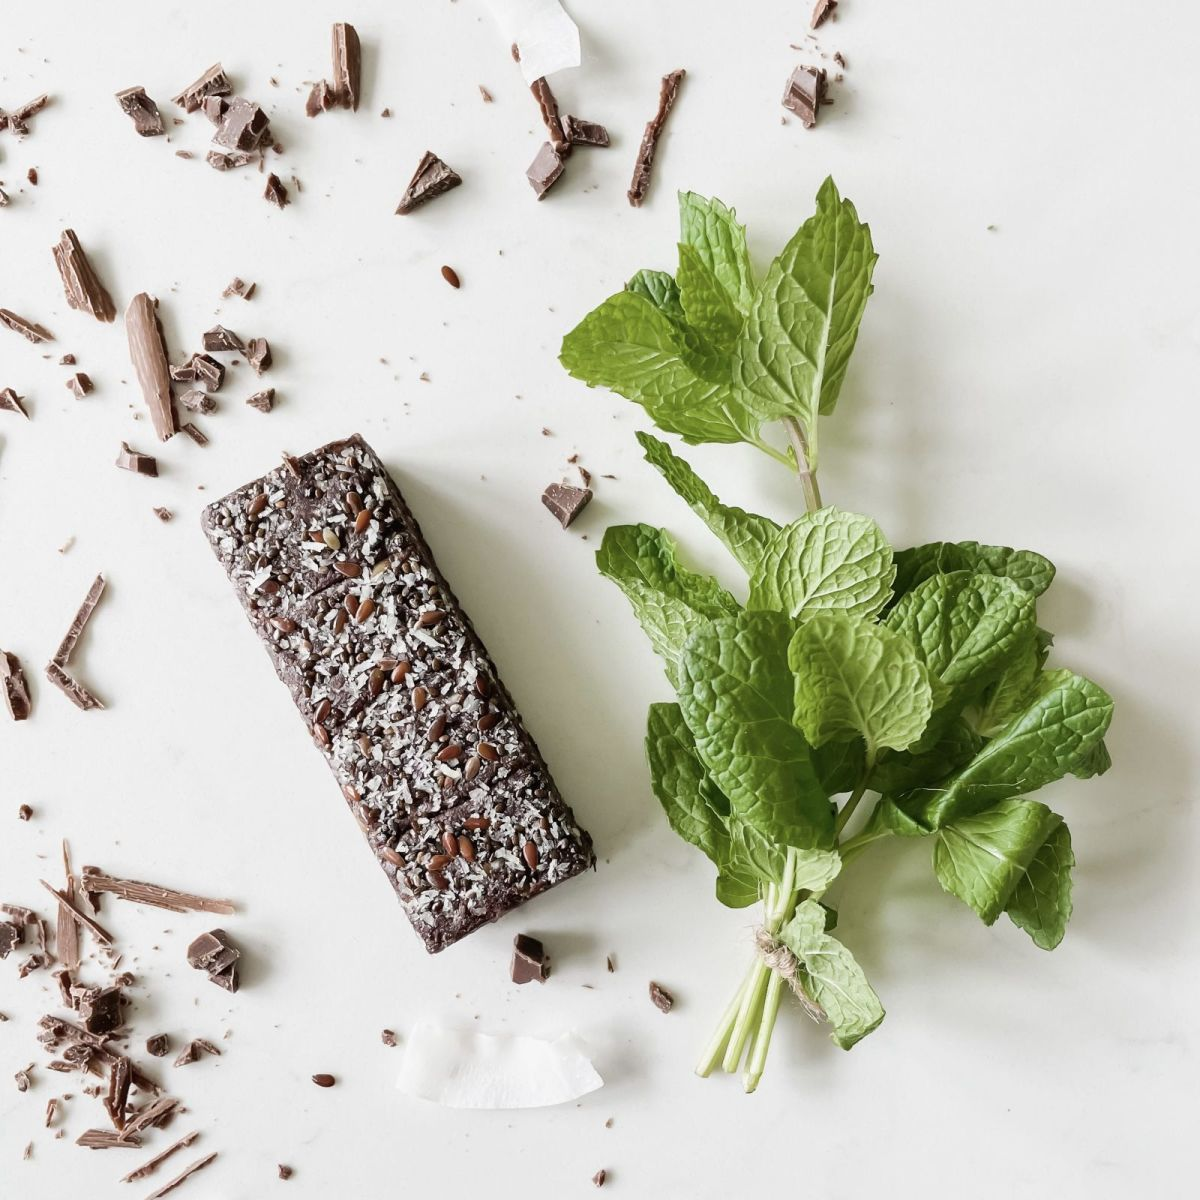 Eat For You - The Hero: Chocolate + Peppermint